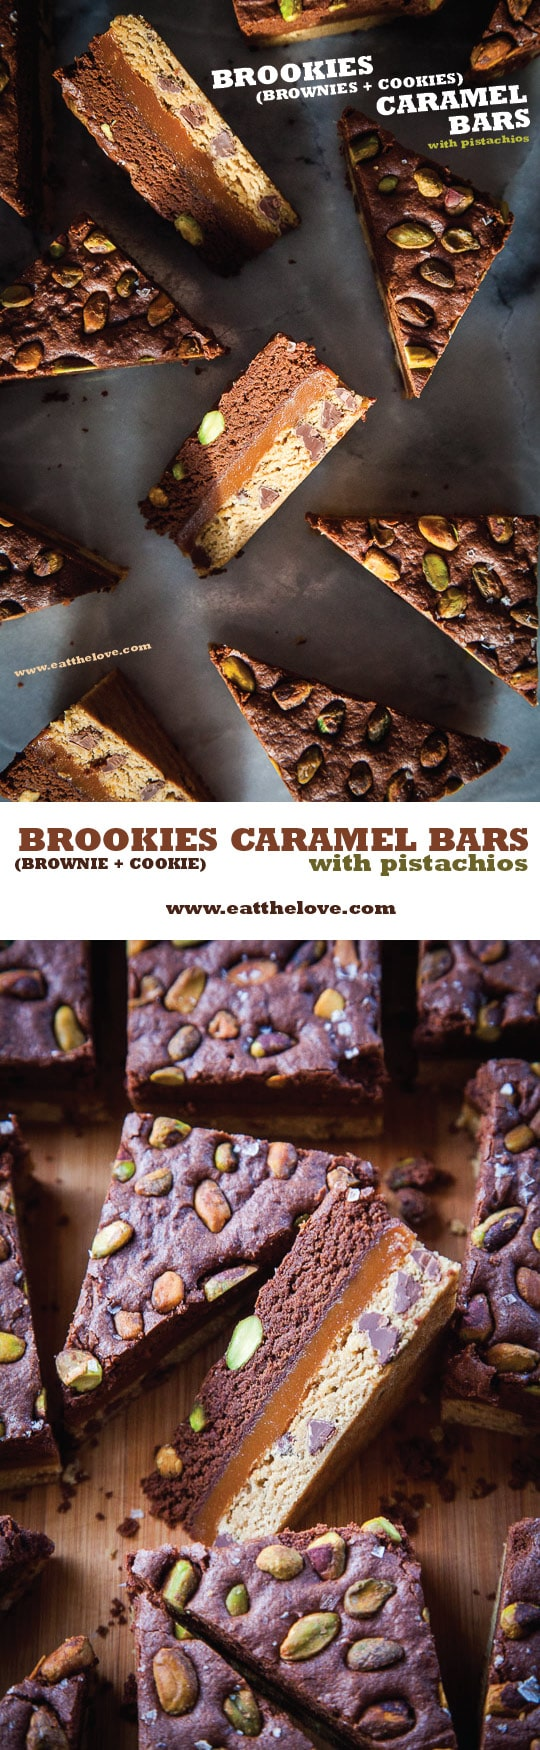 Brookies (Brownies + Cookies) Salted Caramel Bars with Pistachios. Easier to make than they look! Photo and recipe by Irvin Lin of Eat the Love.